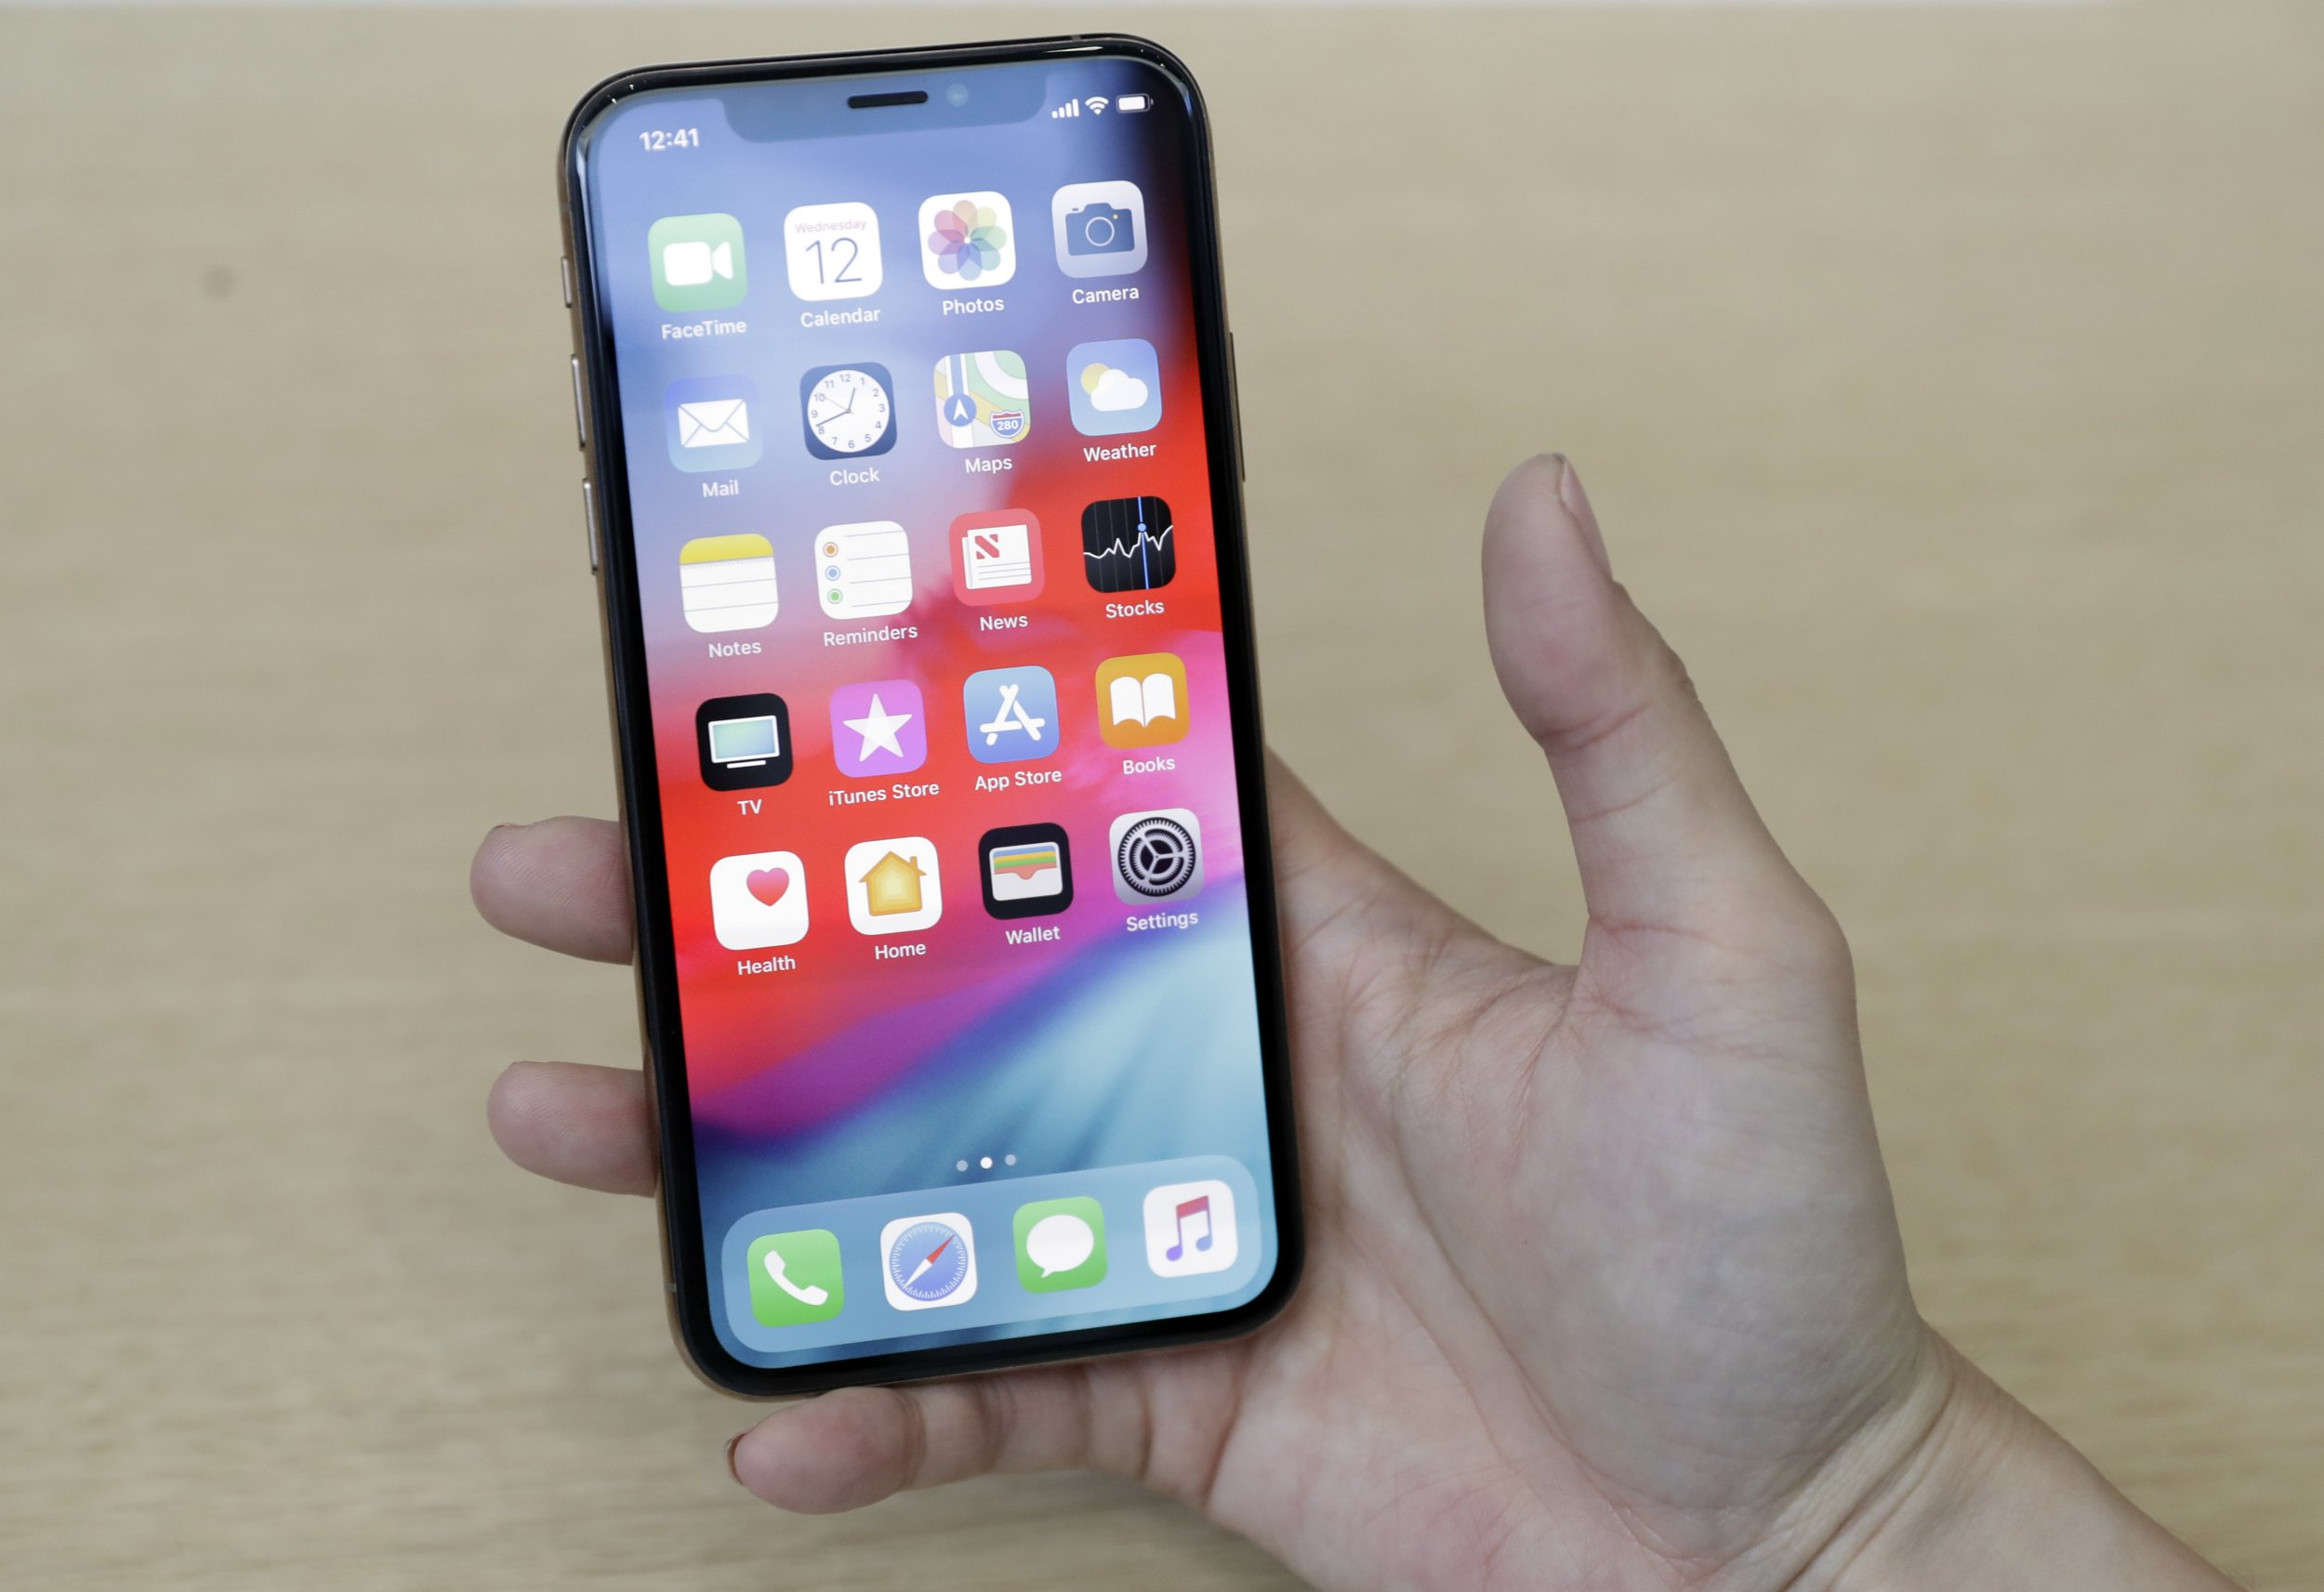 The iPhone XS is shown during an event to announce new products at Apple headquarters Wednesday, Sept. 12, 2018, in Cupertino, Calif. (AP Photo/Marcio Jose Sanchez)